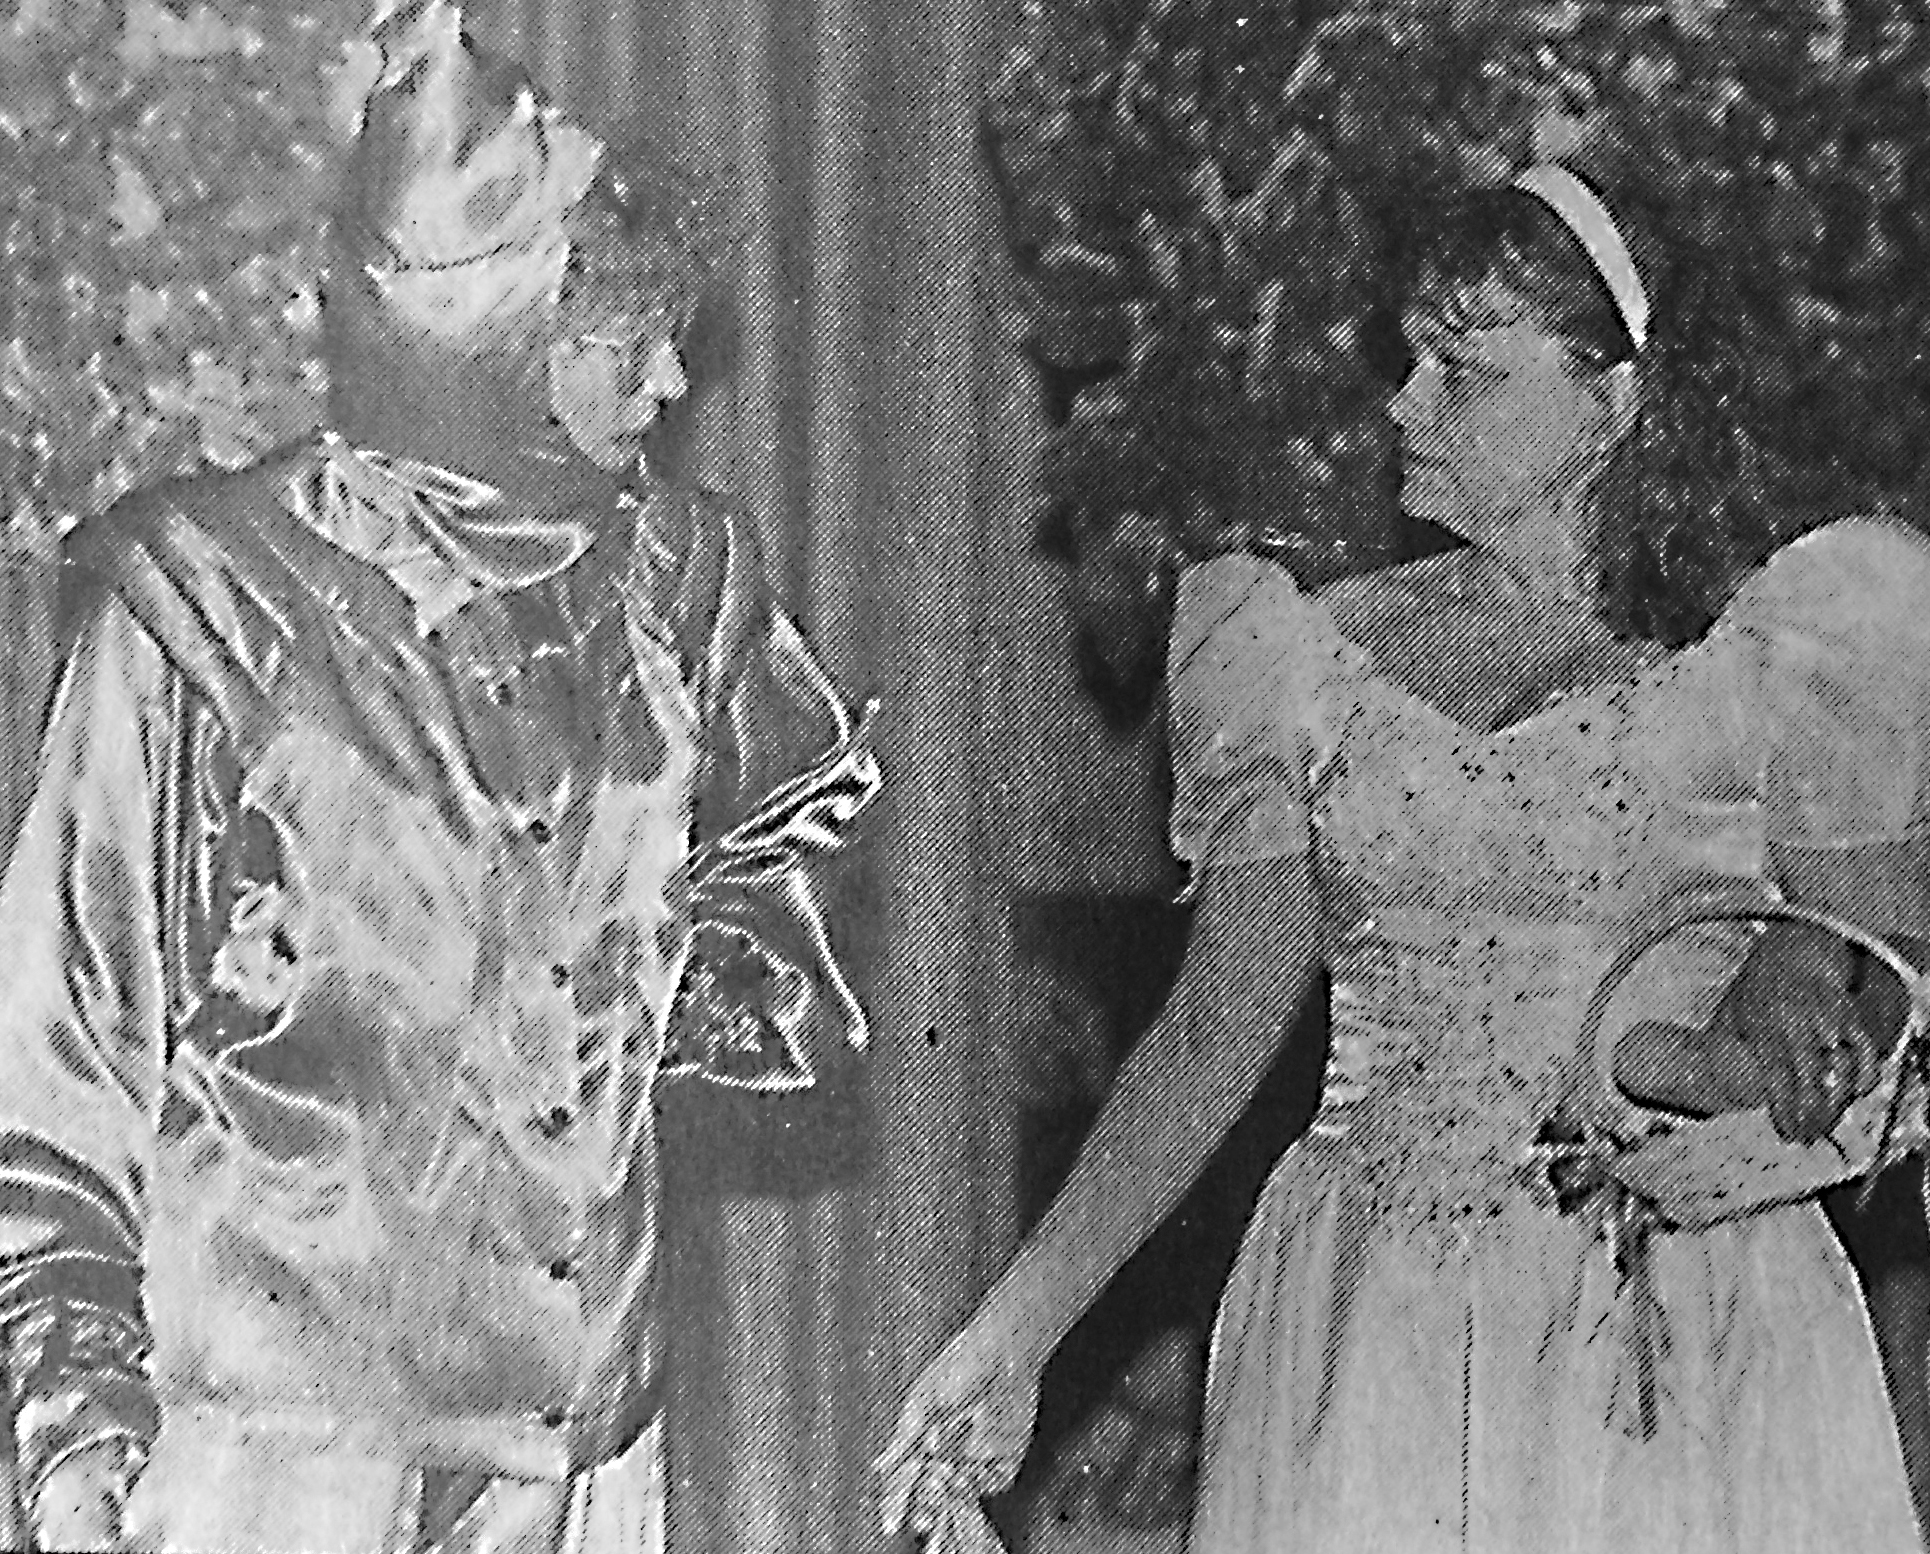 The Tin Man (played by Beth Breeland), left, talks with The Good Fairy (played by Sherry Adams) in 1976. To identify individuals or to submit photos for Reflections, contact The DAILY LEADER at P.O. Box 551, Brookhaven, MS 39602; by telephone at 601-265-5296; by fax at 601-833-6714, or by e-mail at reflections@dailyleader.com. Pictures are published free of charge and will be returned to the owner. Photos taken at least 25 years ago are preferred.